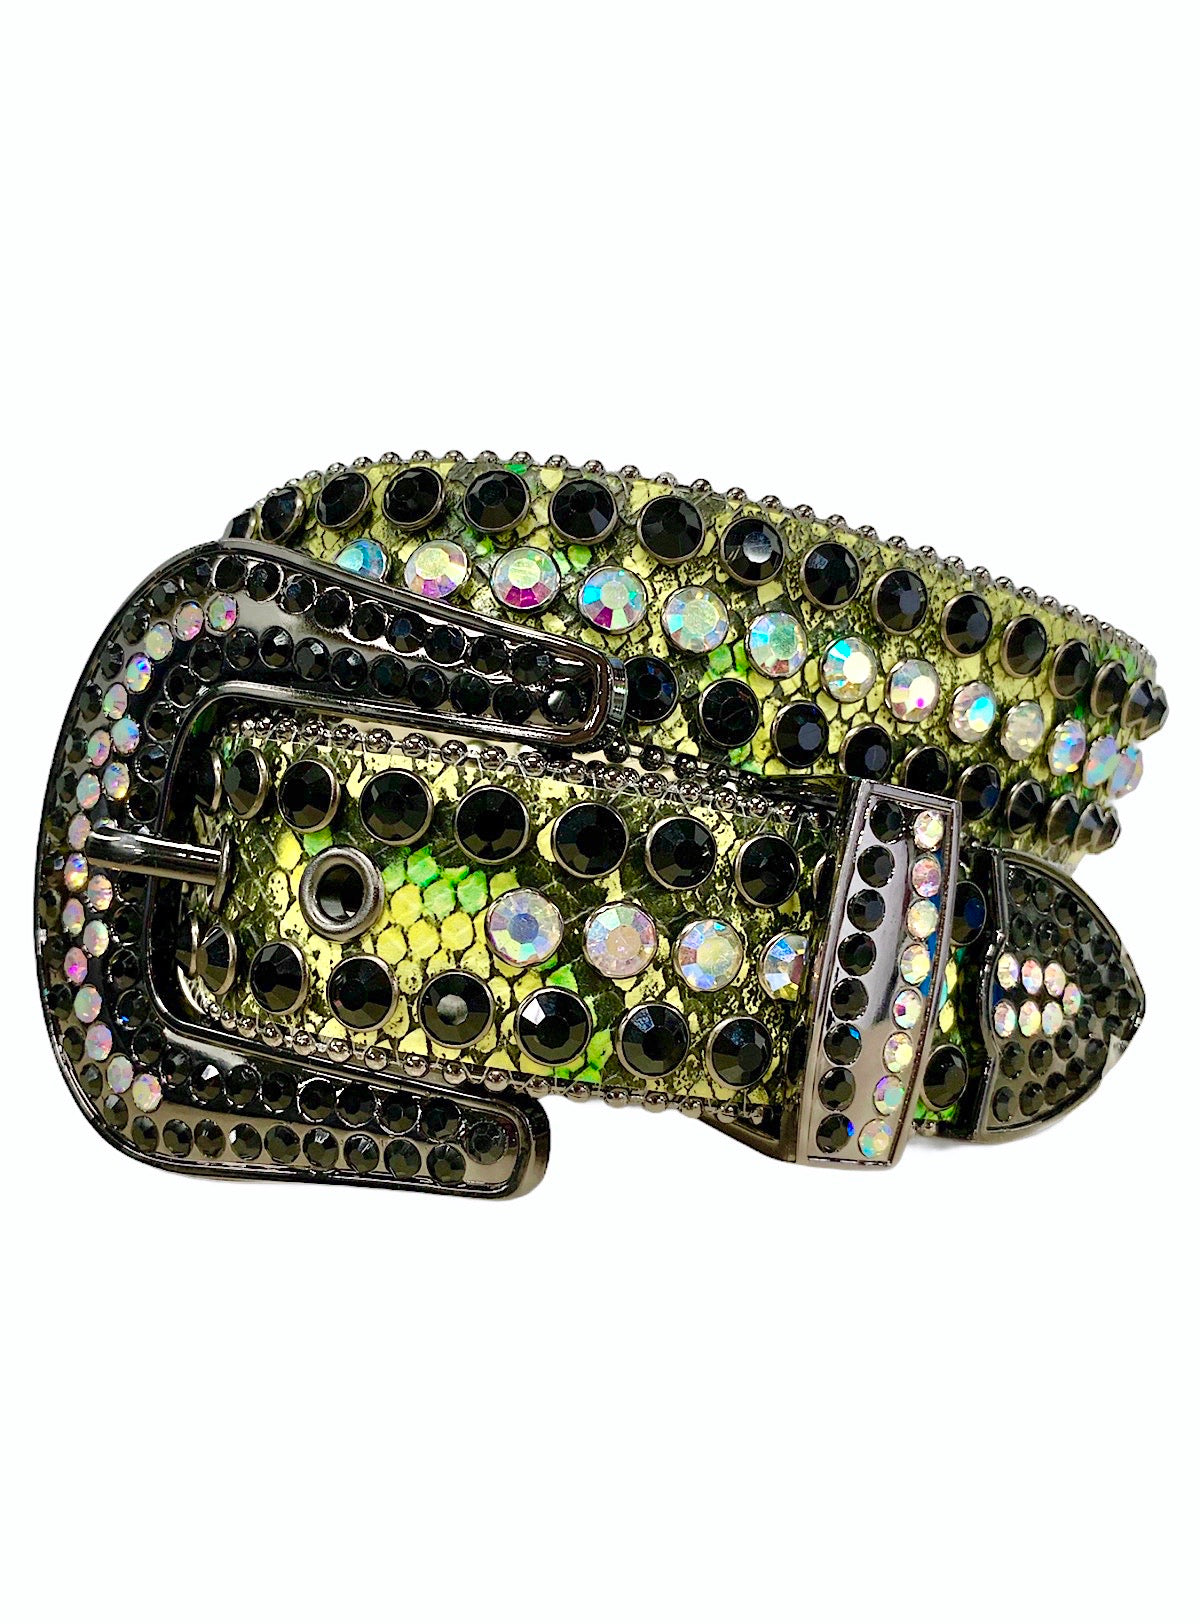 DNA Belt - Snake Skin - Green, Yellow, and Black